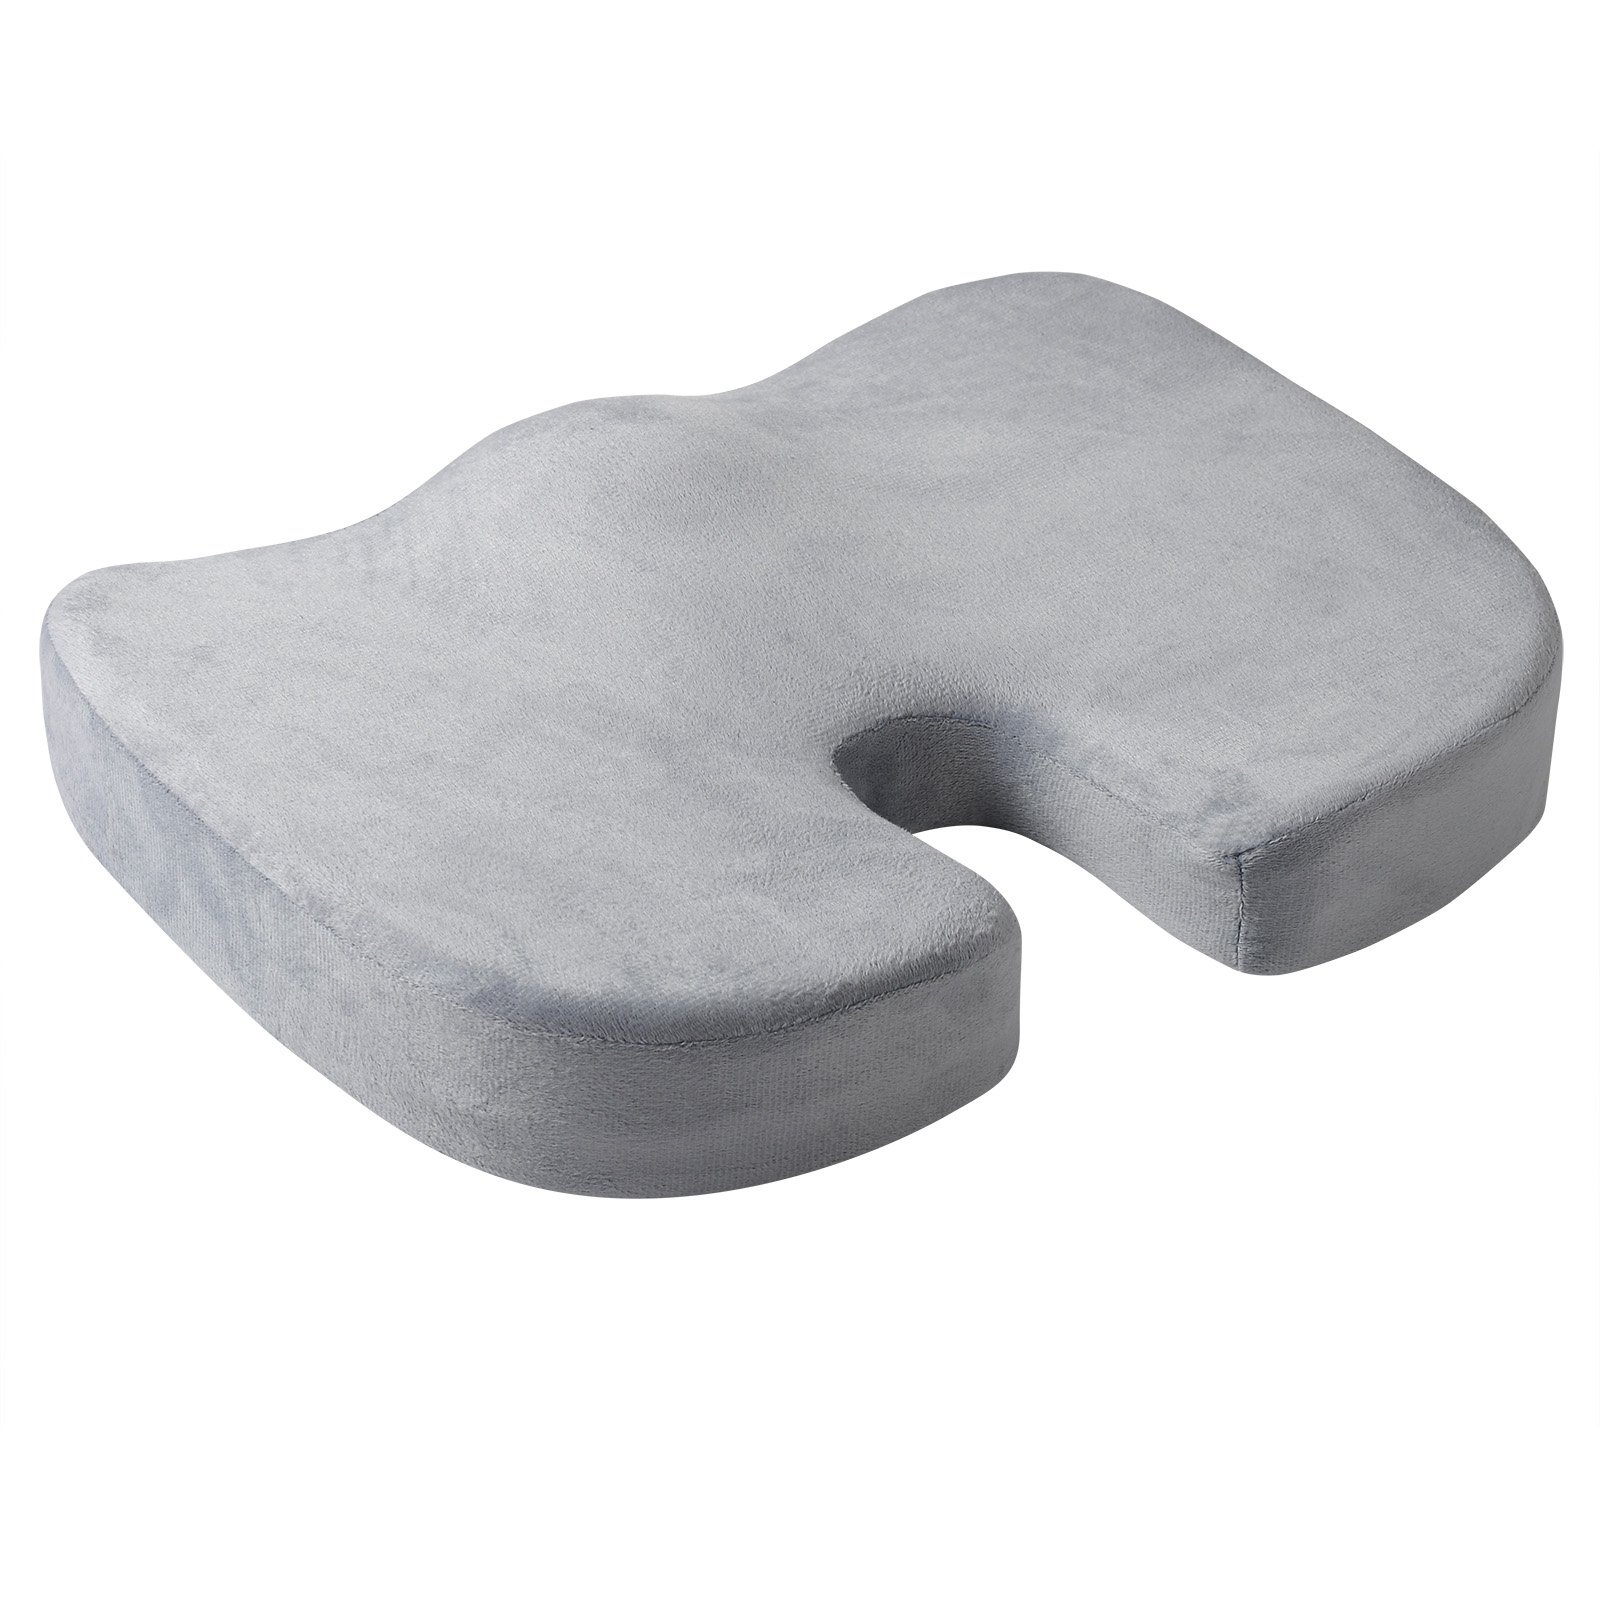 Woltu Coccyx Orthopedic Memory Foam Office Chair and Wheelchair Seat Cushion Relief Back Pain and Sciatica-Gray